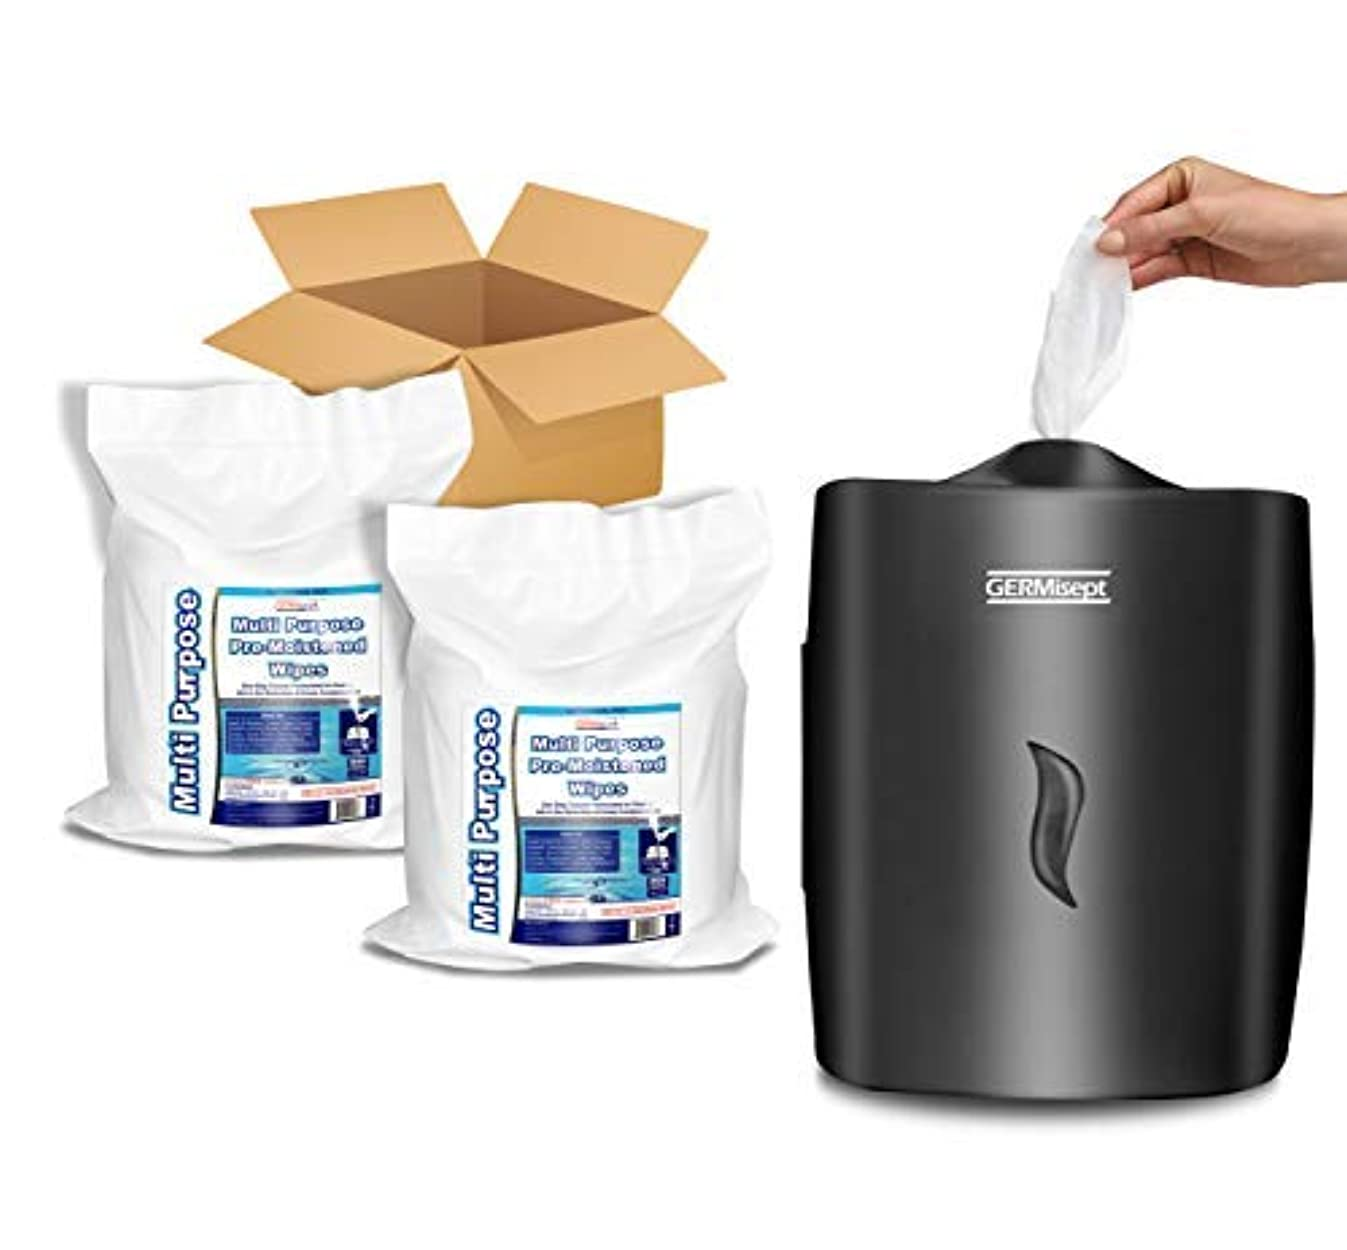 GERMISEPT Wall Mount Dispenser + 2 800 CT Rolls Combo - Multipurpose Gym Wipes & Wellness Center Cleaning Wipes/Cart Wipes (Dispenser + 2 Rolls)